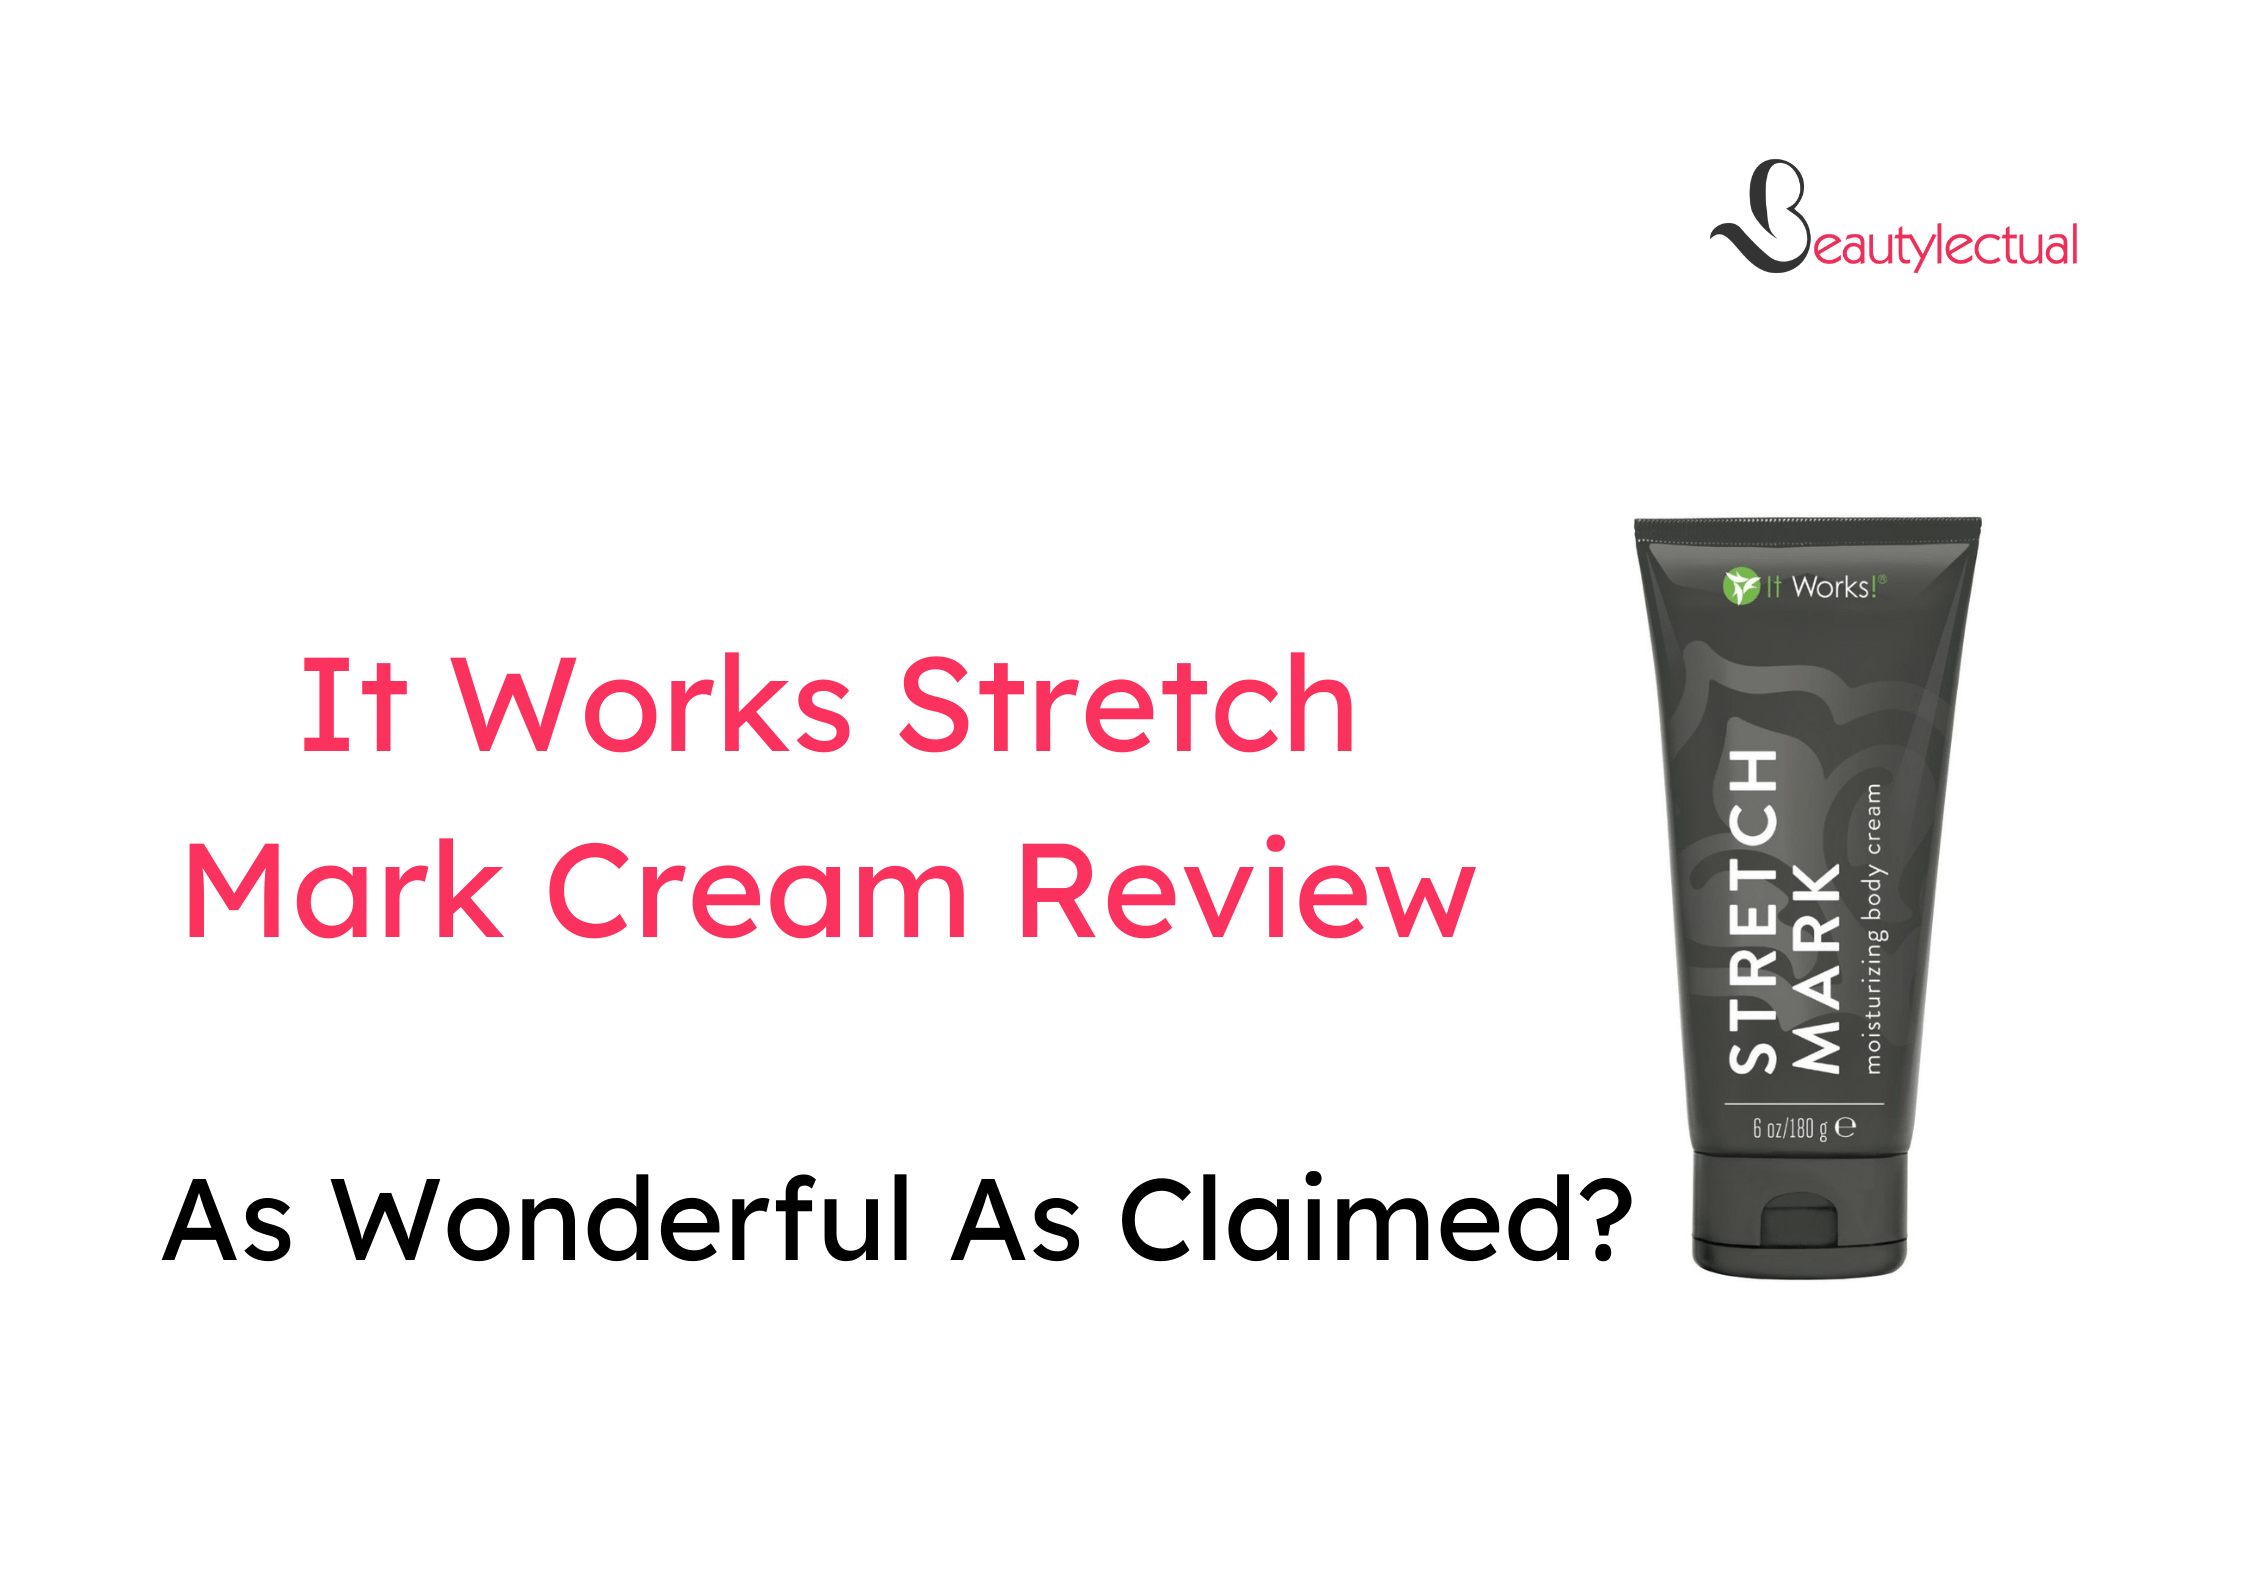 It Works Stretch Mark Cream Review